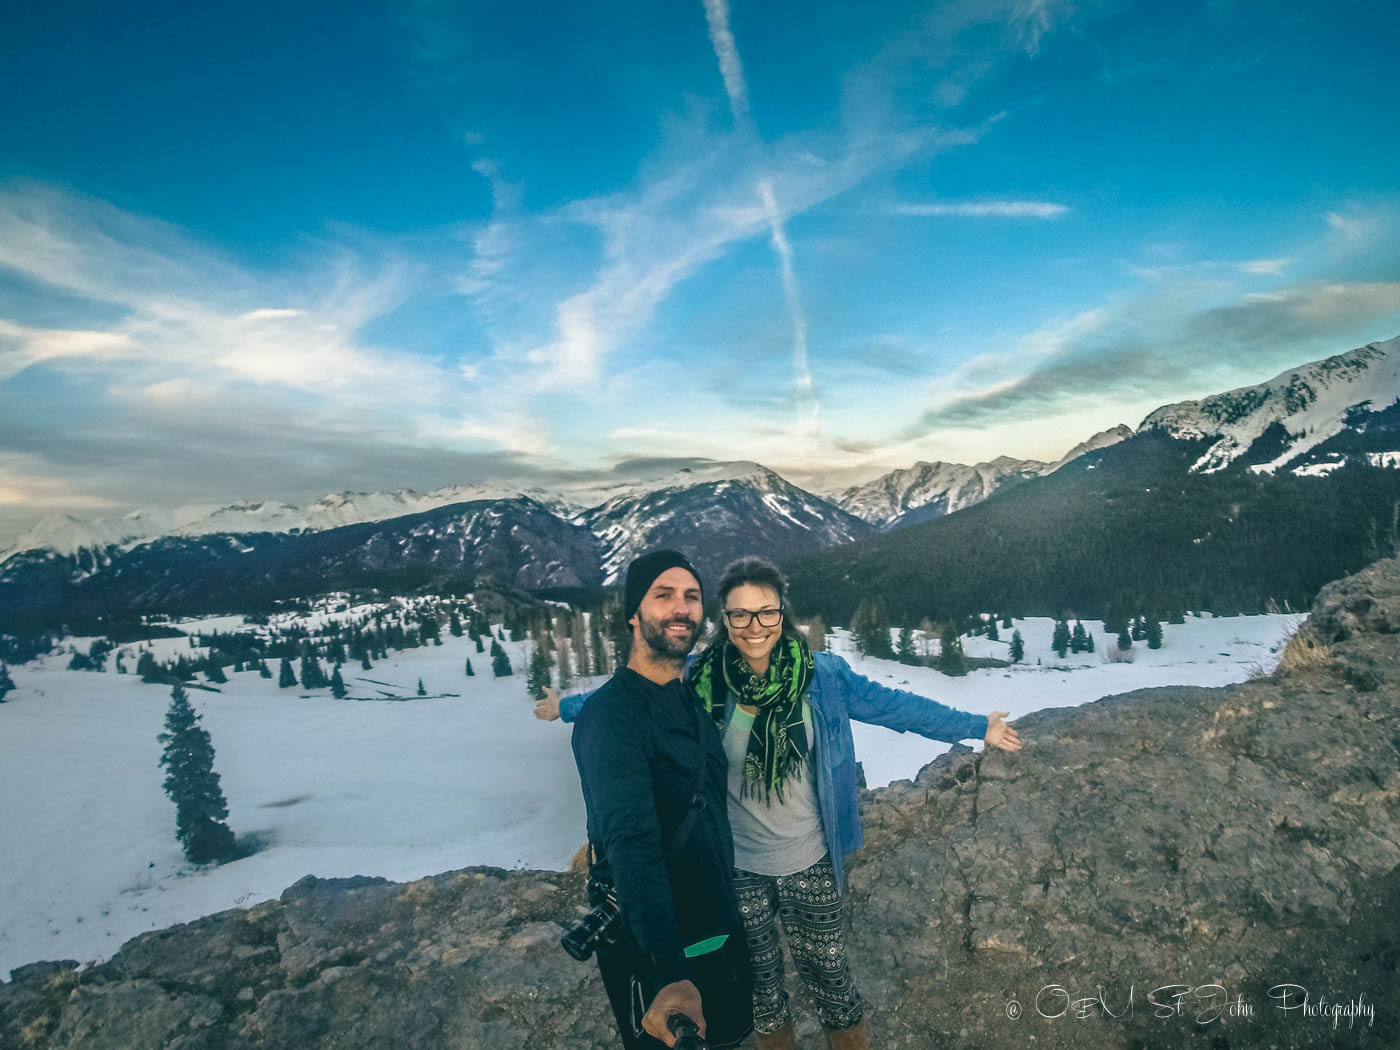 Colorado road trip: We loved the freedom of roadtripping around Colorado